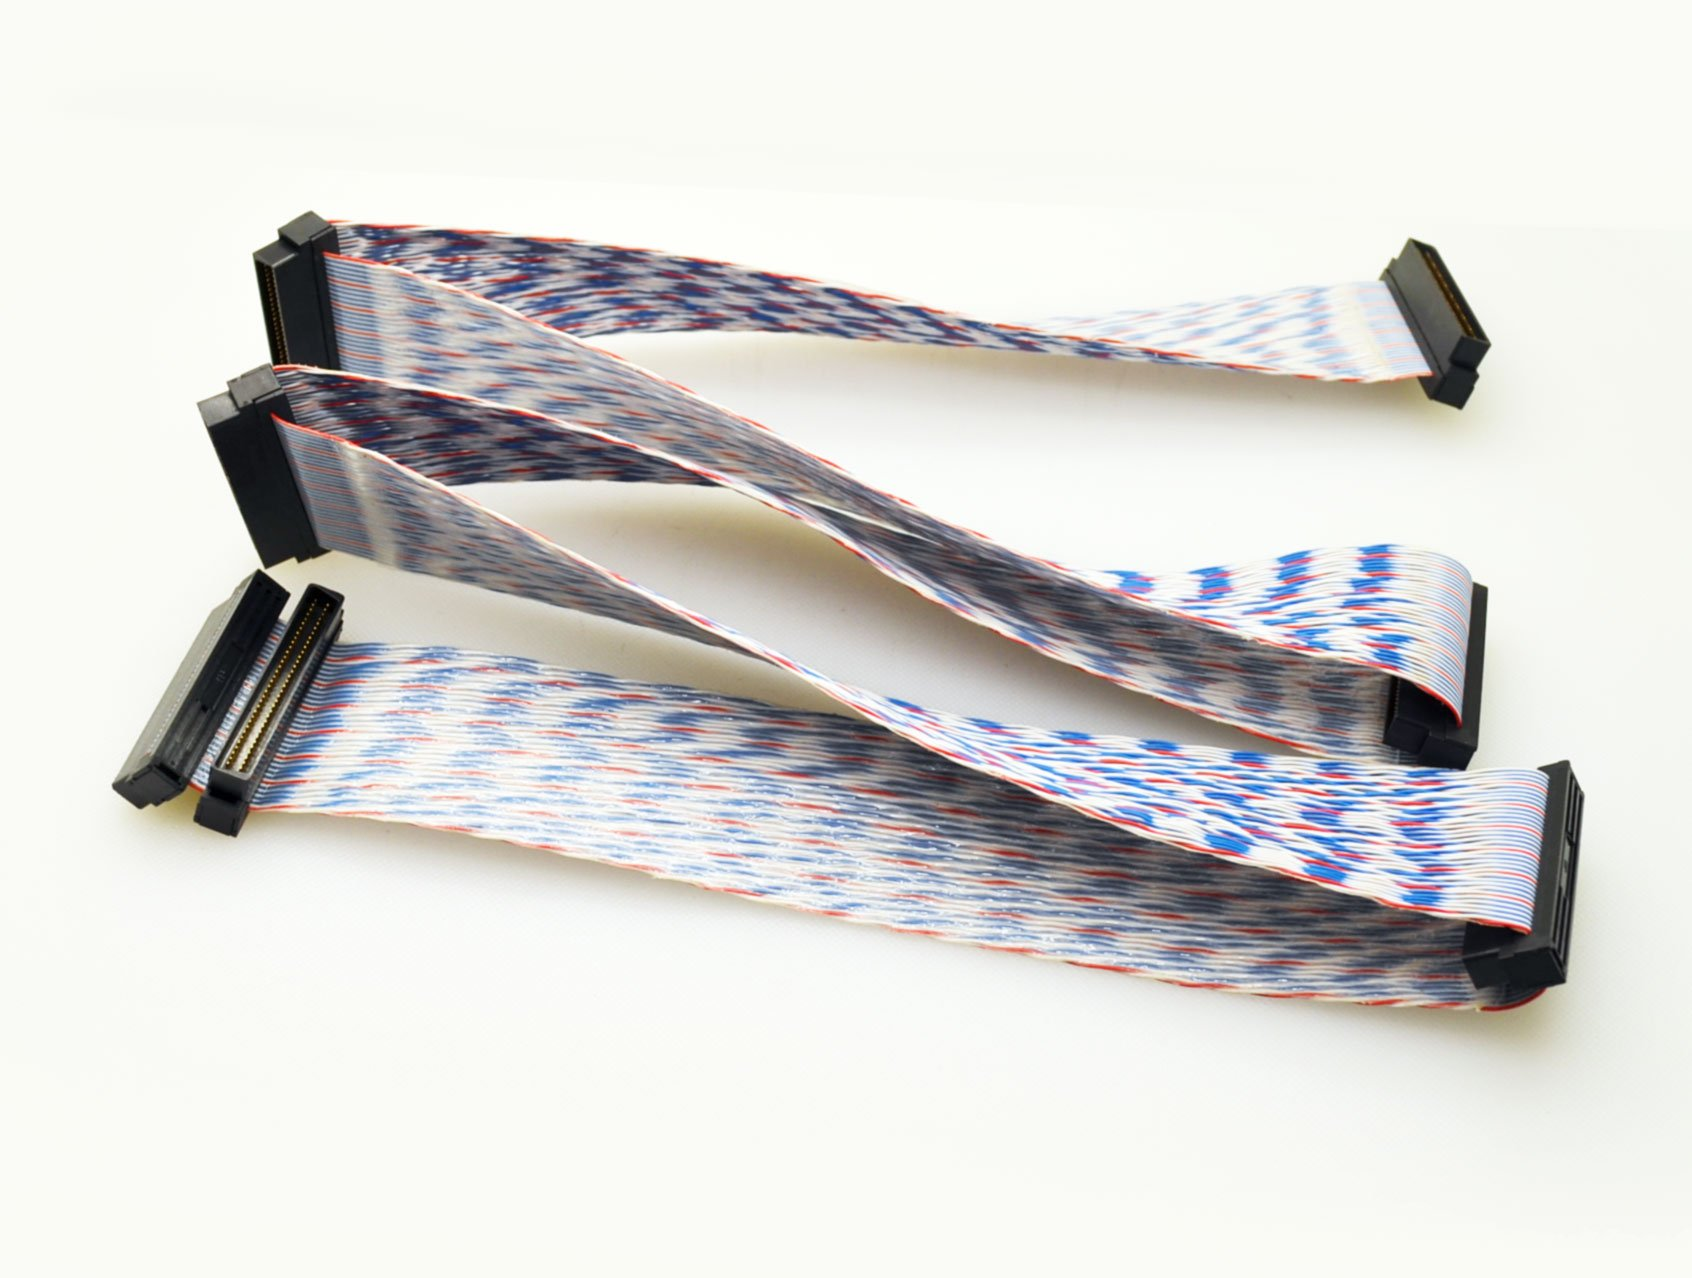 Generic 5 device 68 Pin SCSI Ribbon Cable for Ultrawide SCSI Products at 40Mb/Sec